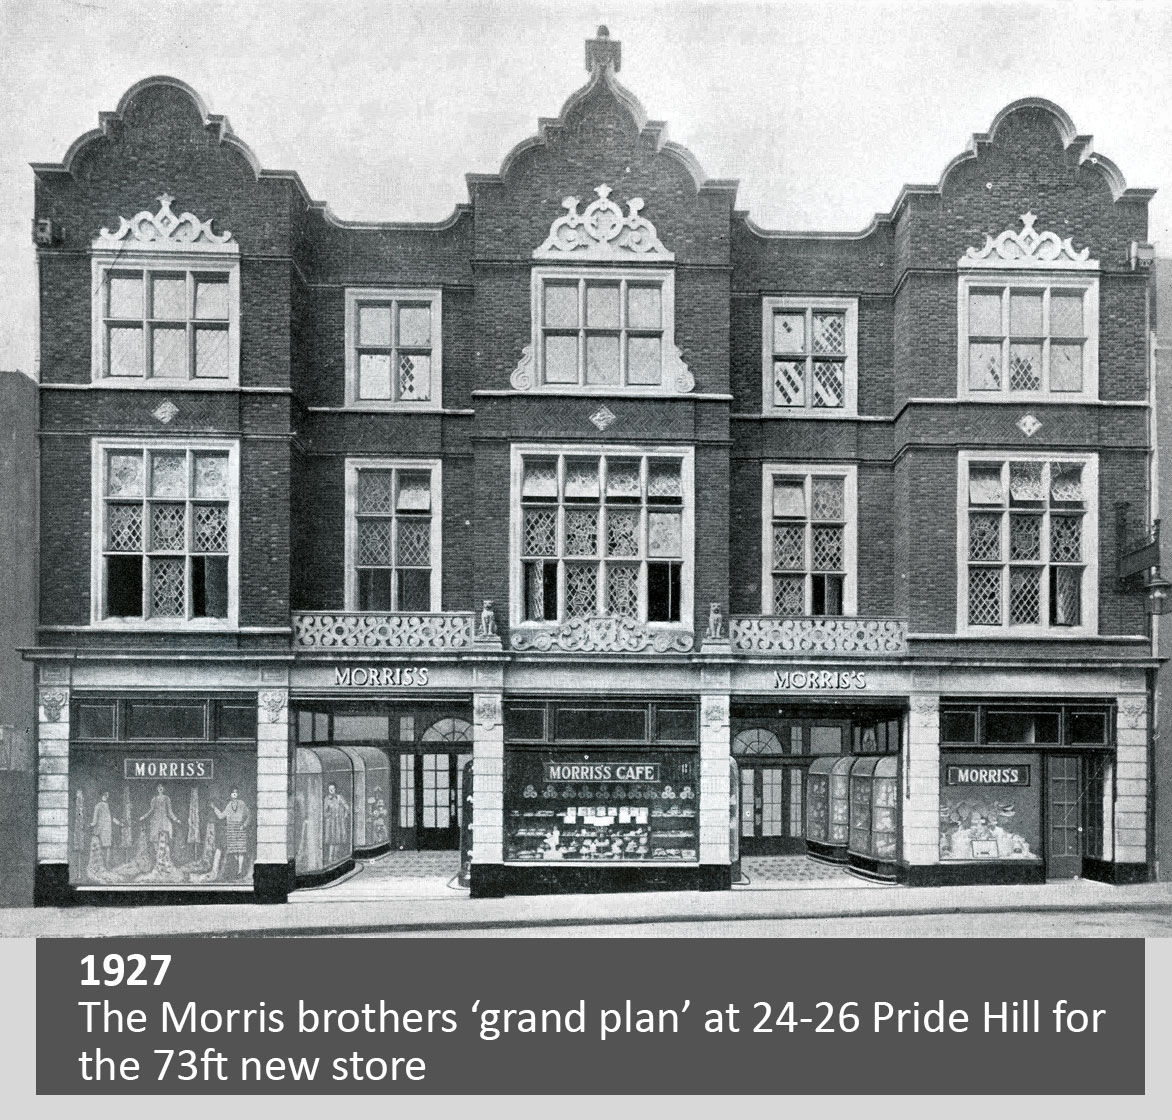 The Morris brothers 'grand plan' at 24 - 26 Pride Hill for the 73ft new store